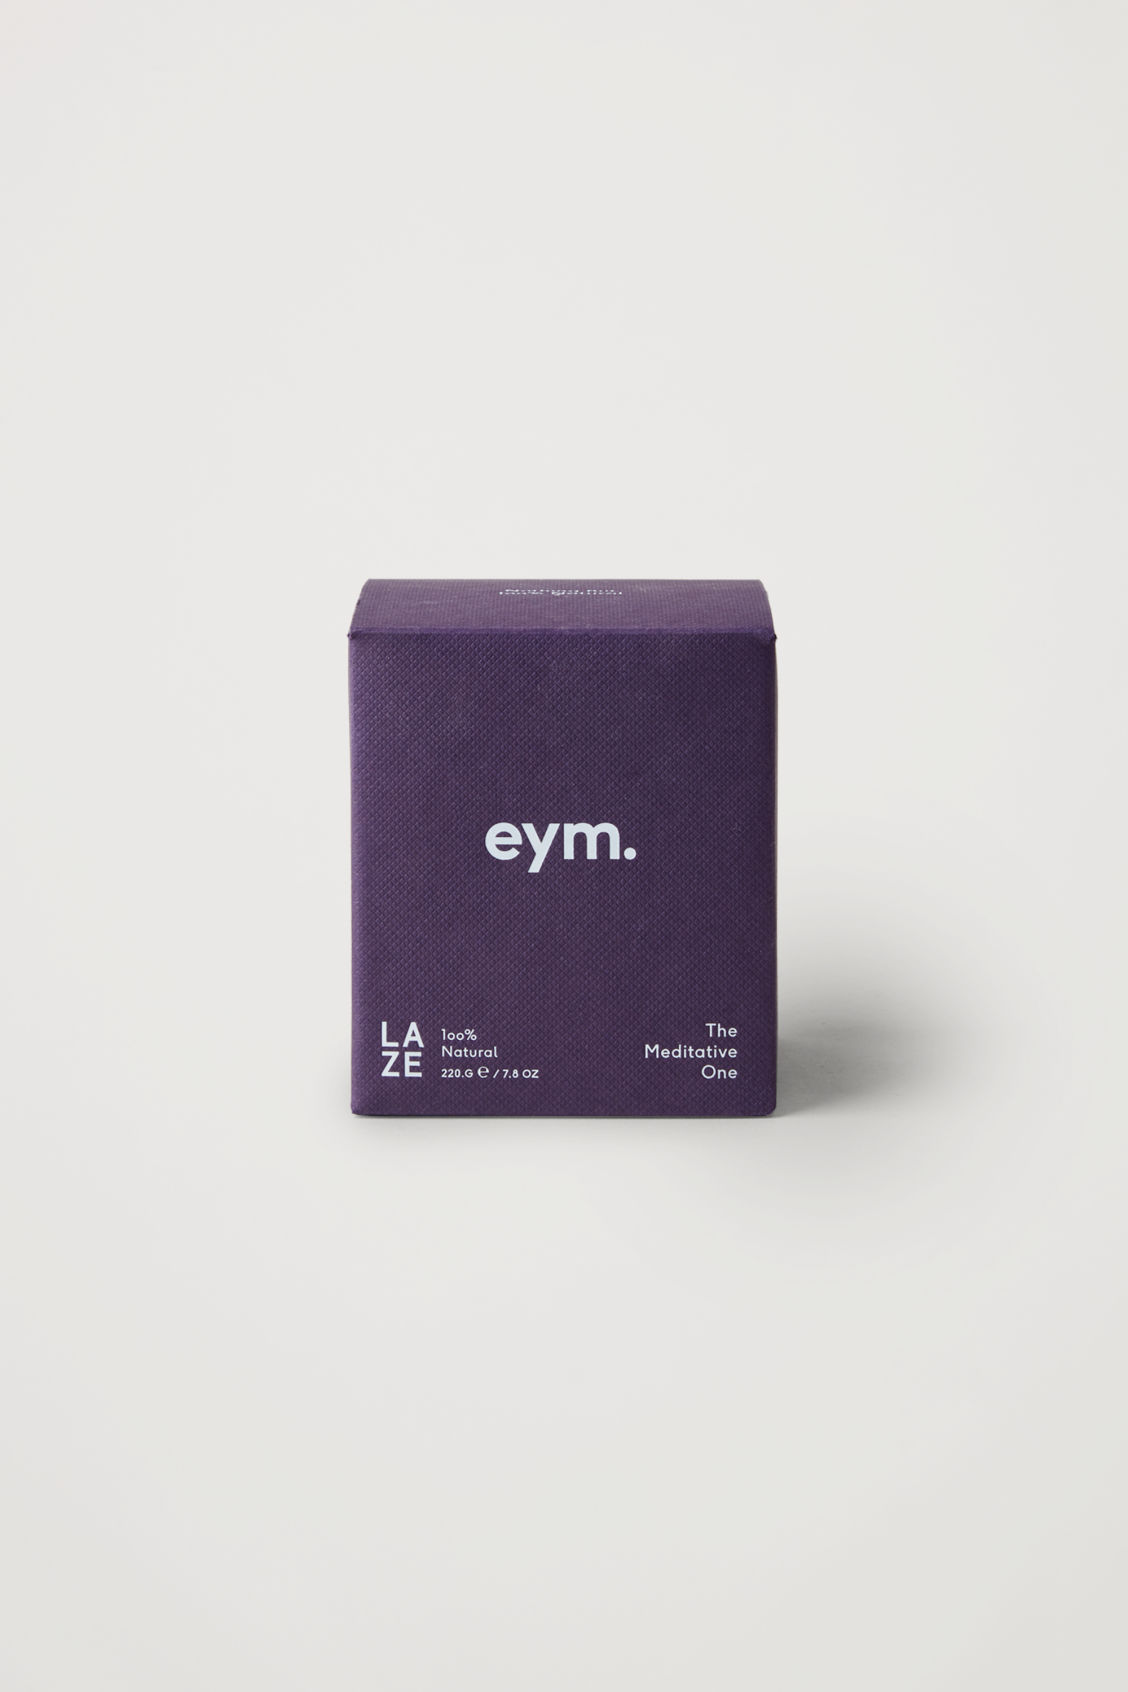 Cos Eym Candle In Purple